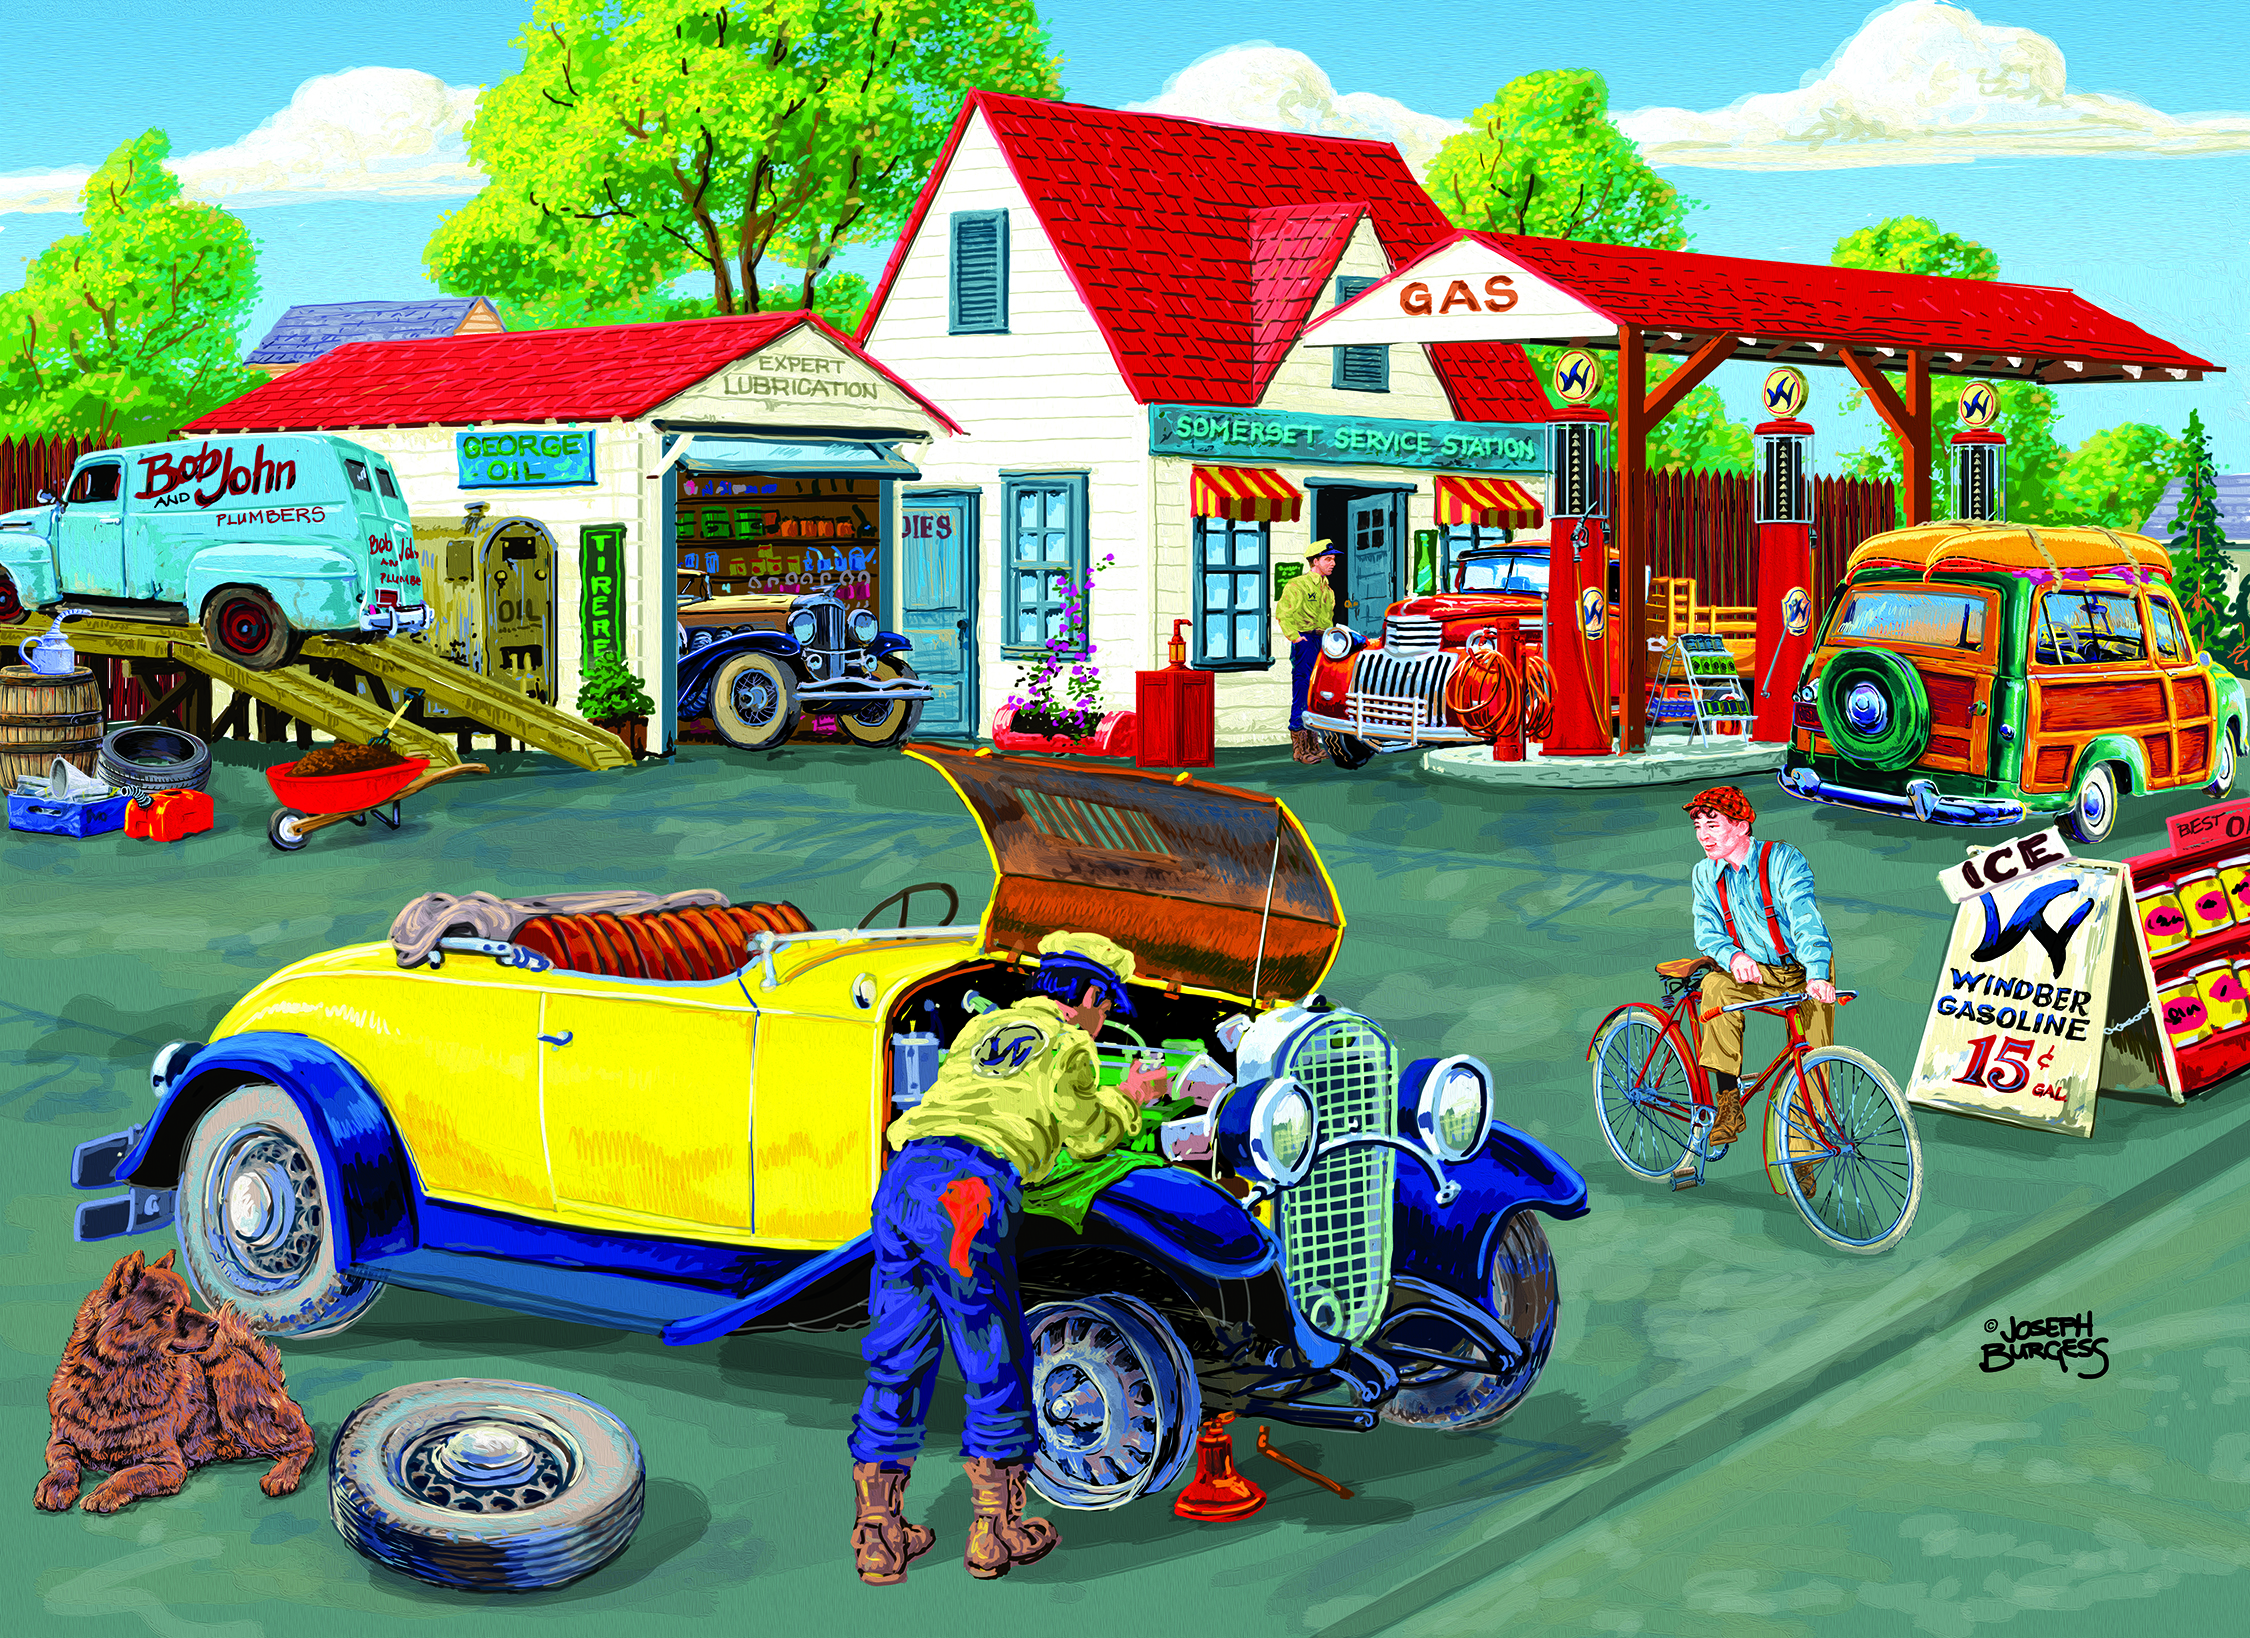 Somerset Service Station (Large Piece) 500 pc Jigsaw Puzzle by SunsOut - Large Oversized Easy to Grasp Puzzle Pieces